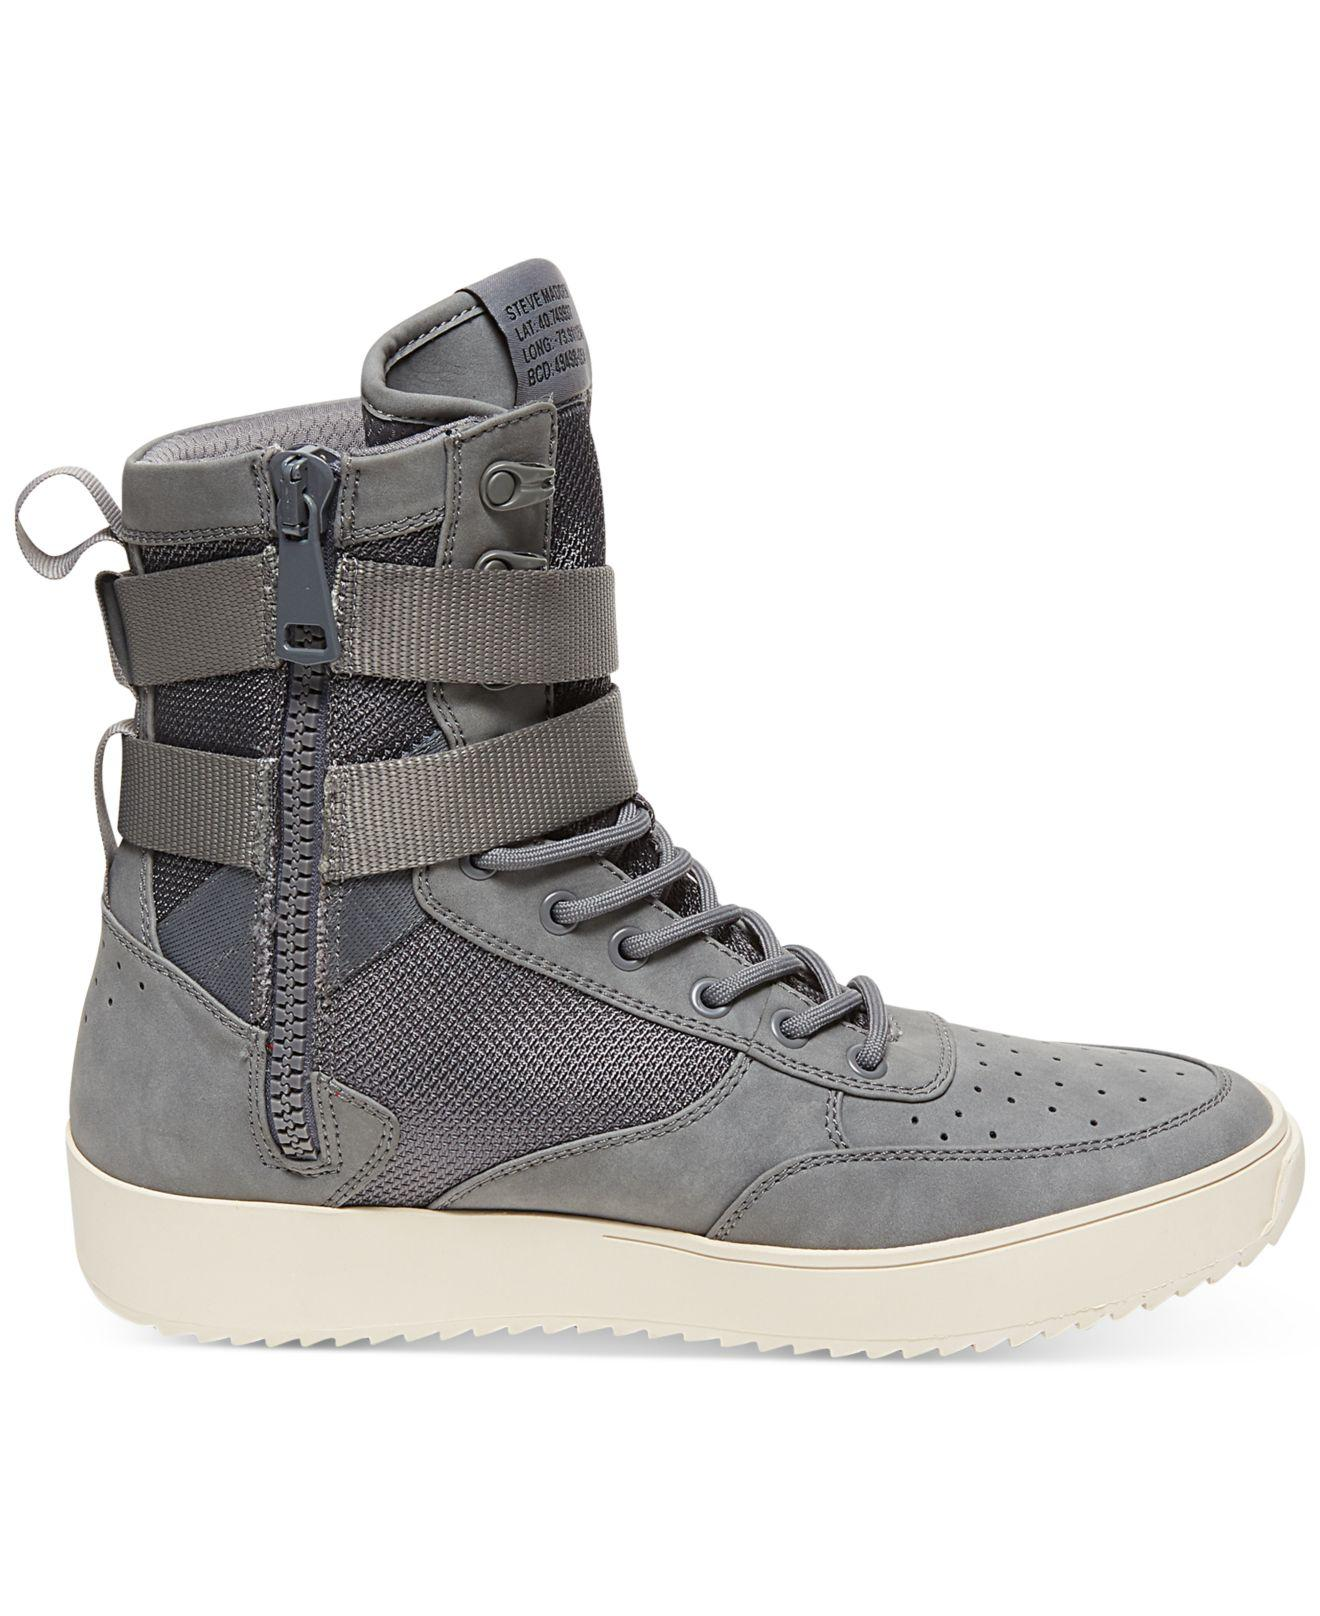 1a0b0439db0 Lyst - Steve Madden Men s Zeroday High-top Sneakers in Gray for Men